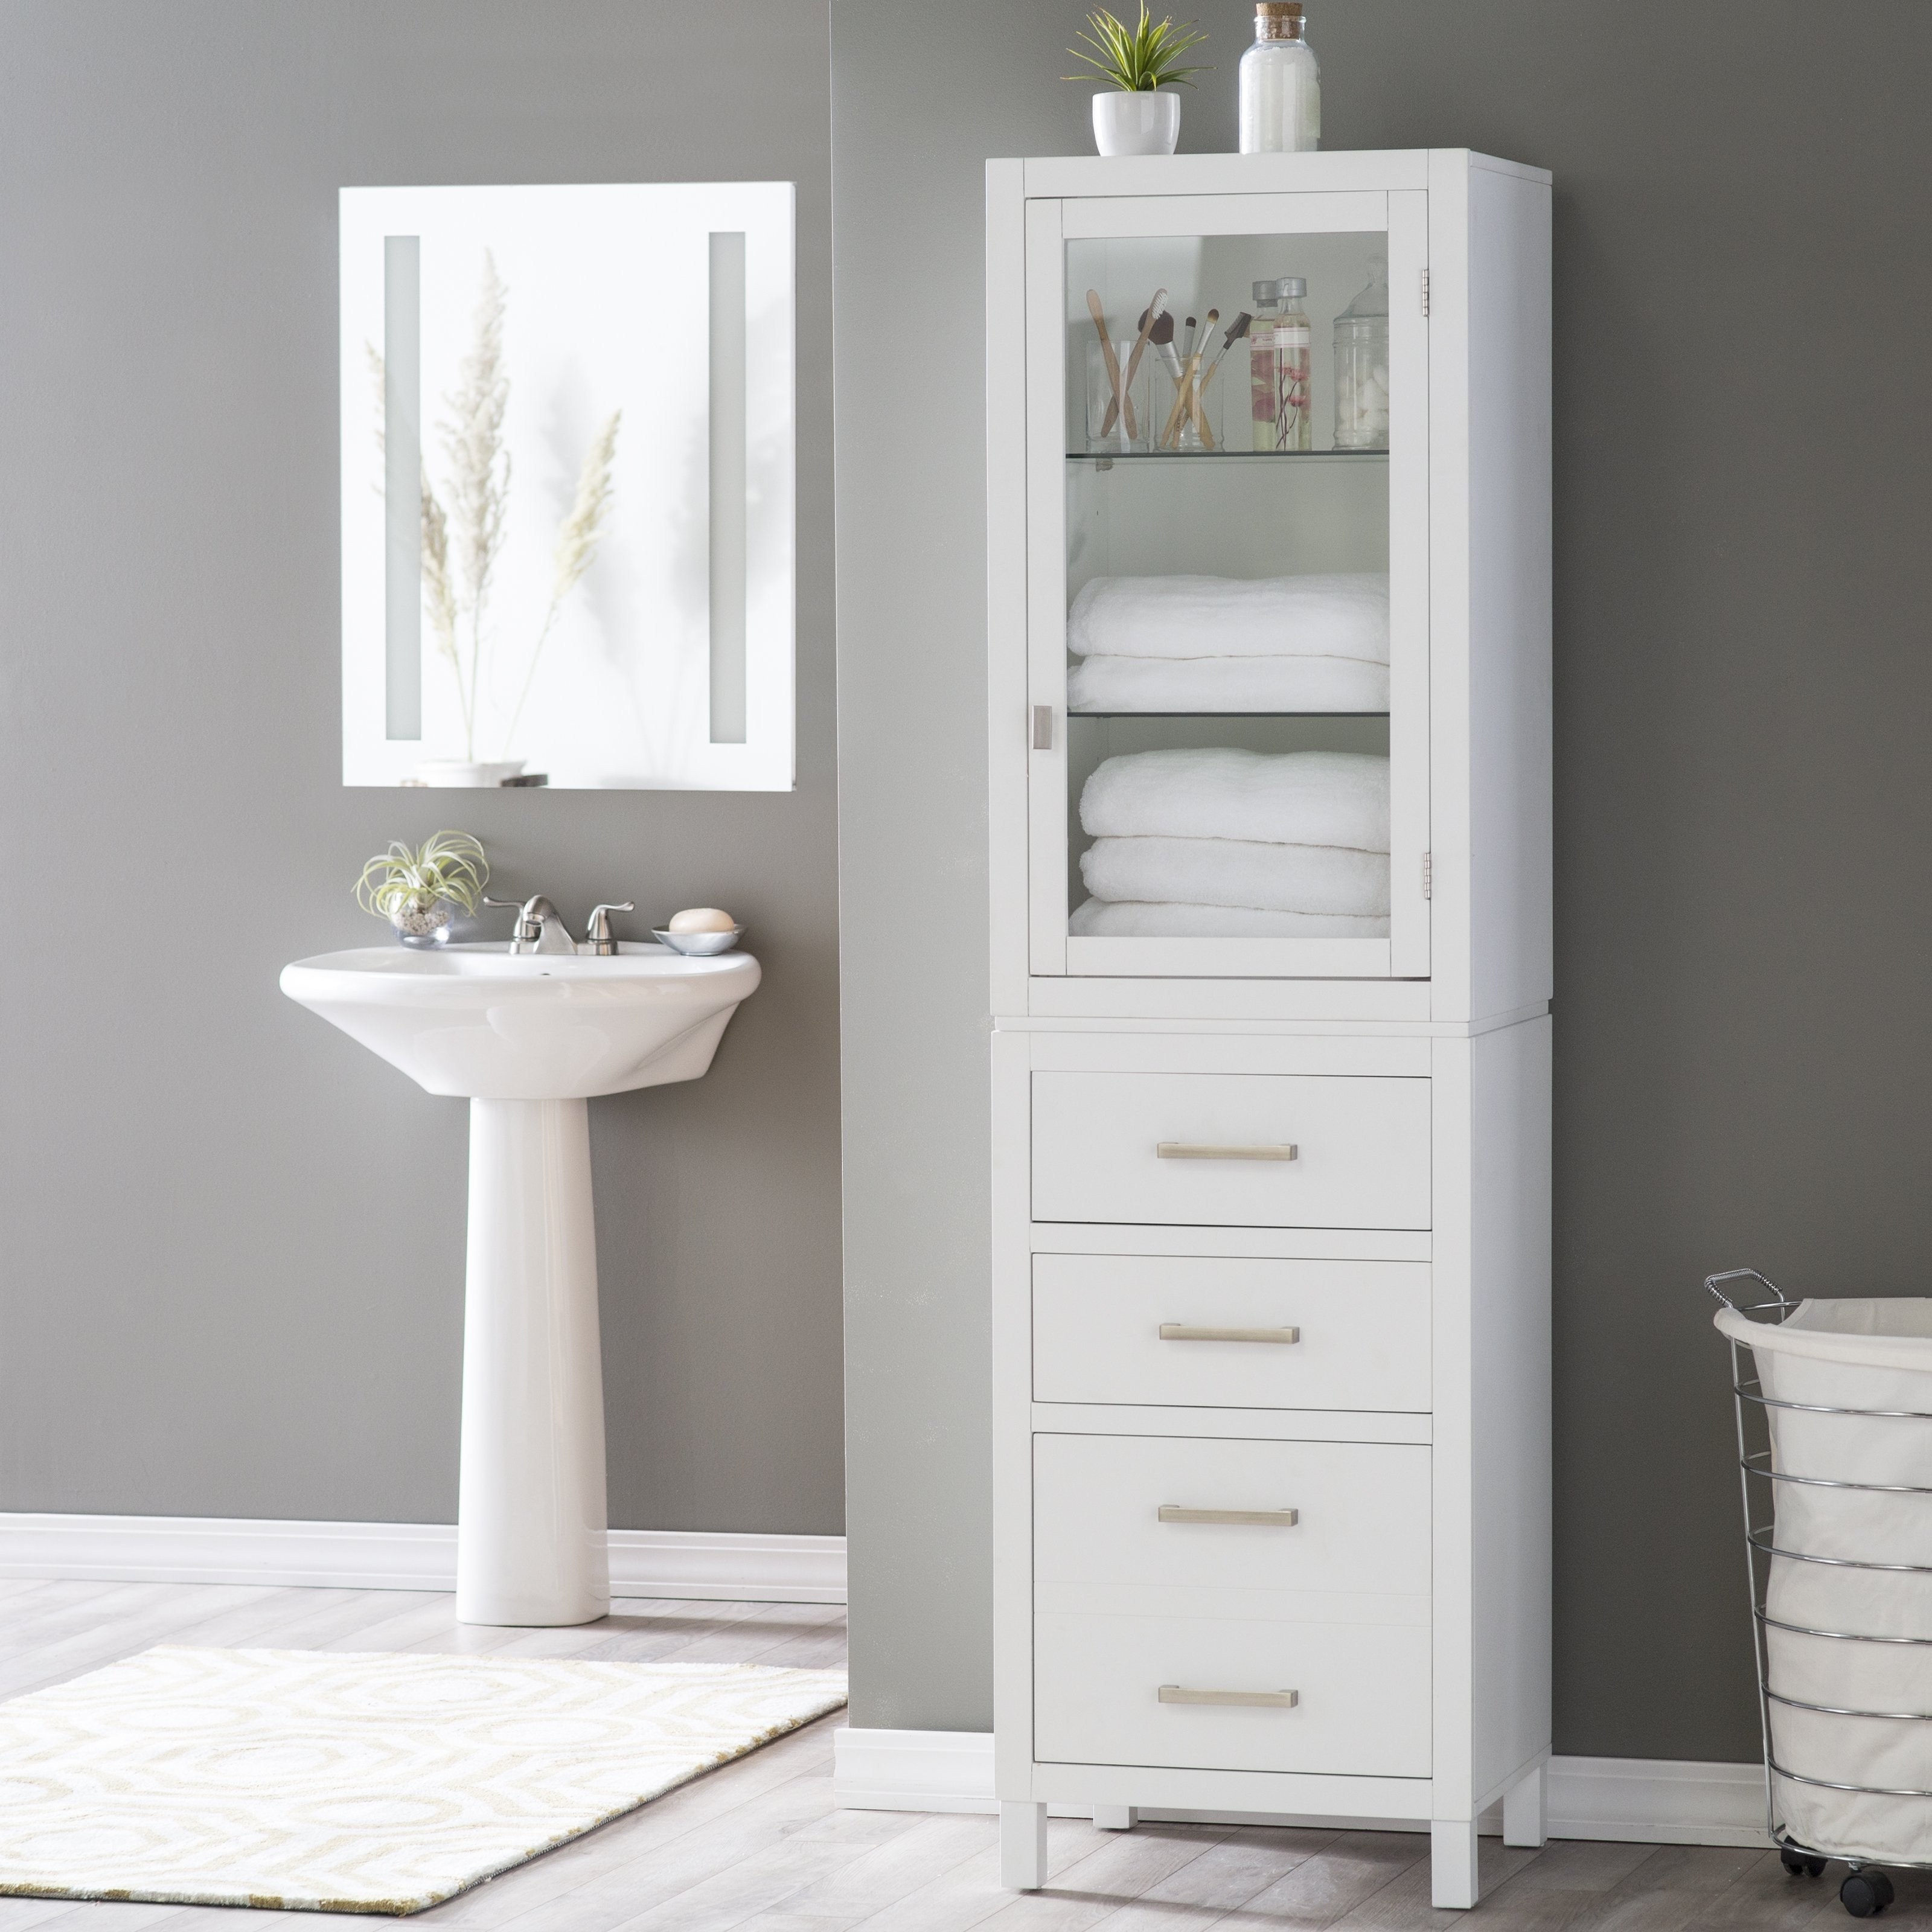 Upscale Bathroom Linen Storage Tall Cabinet With Doors